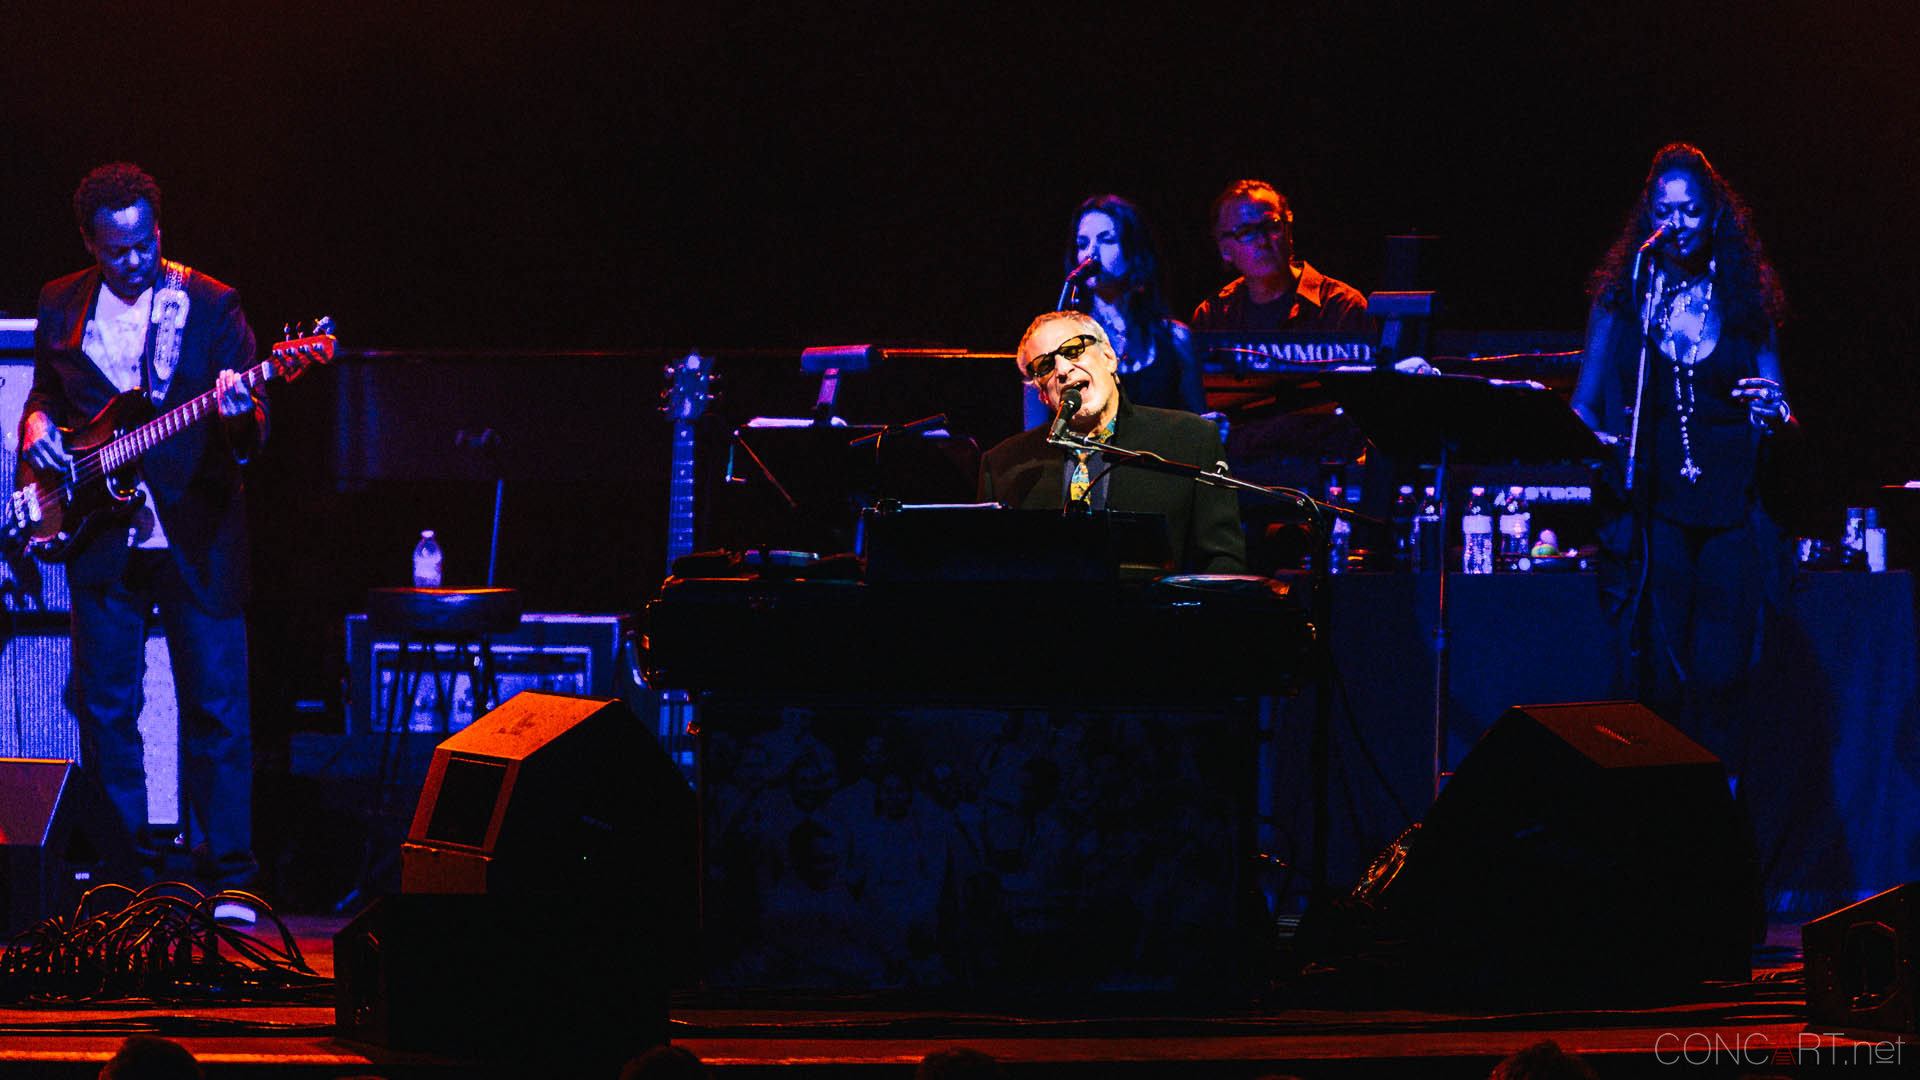 steely_dan_live_old_national_murat_theatre_indianapolis_2013-17